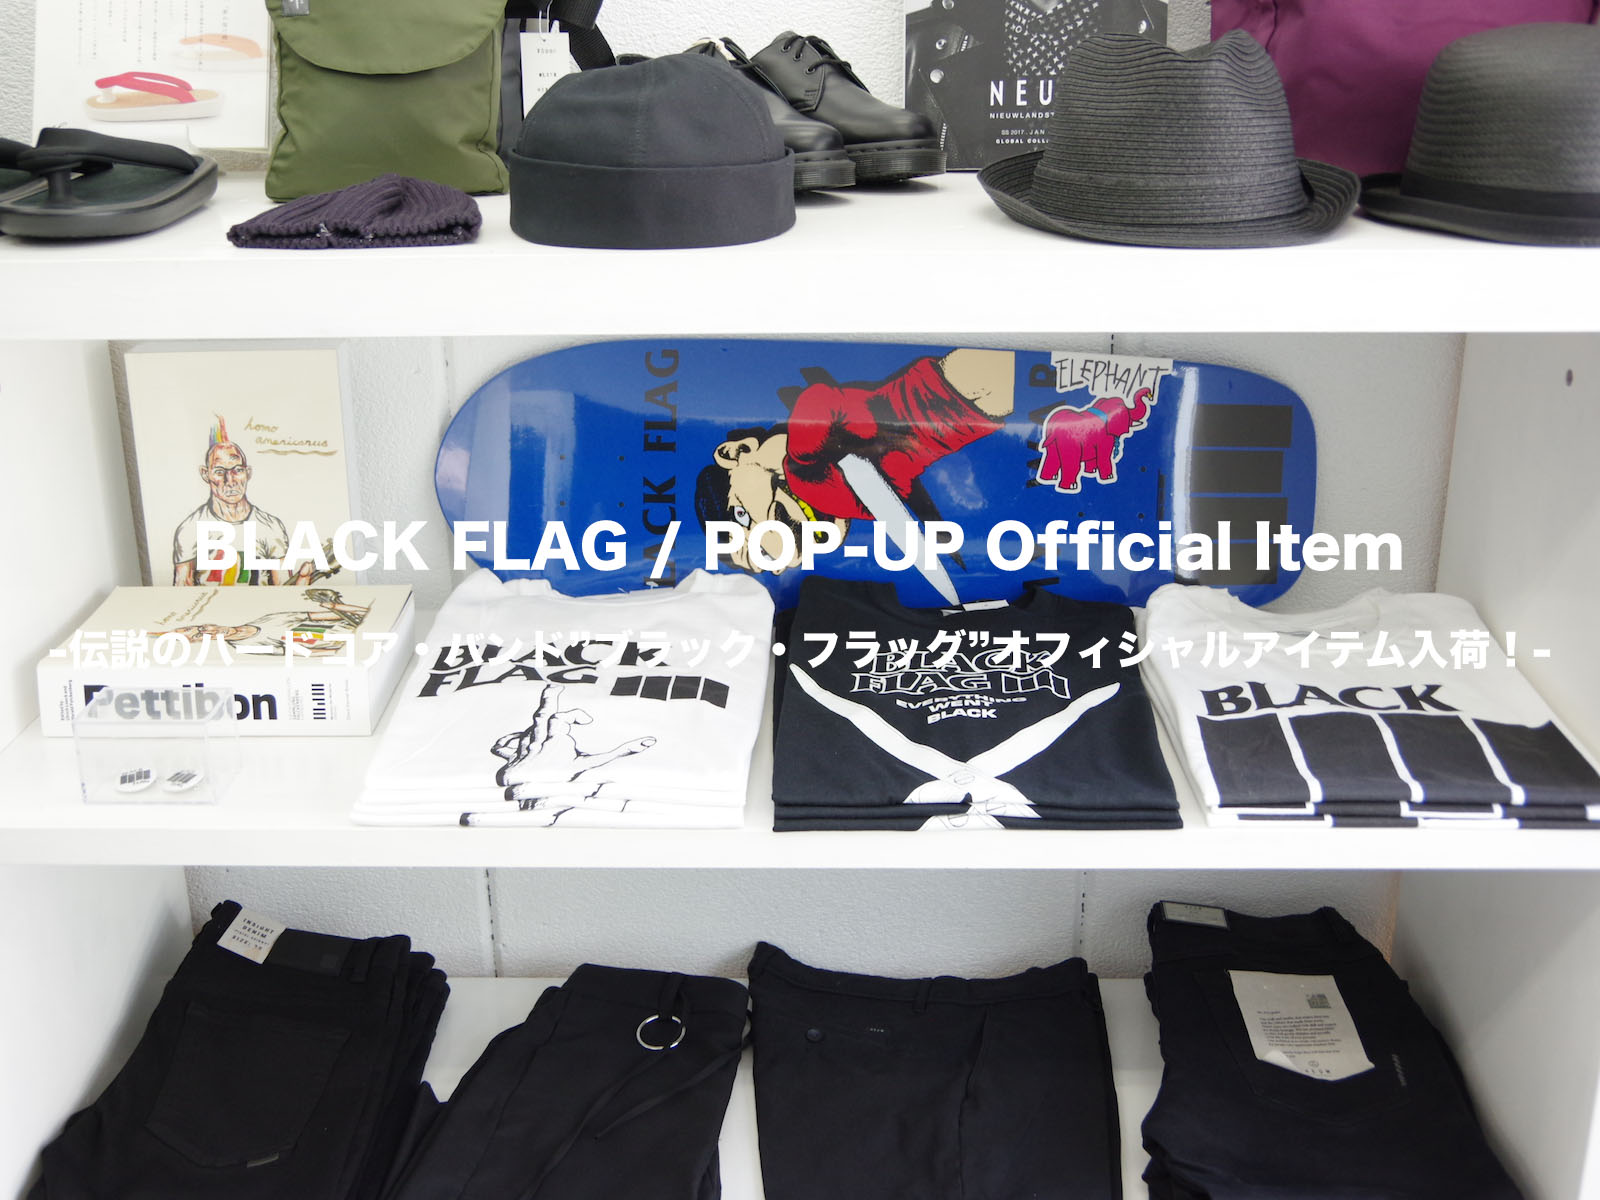 BLACK FLAG POP-UP Official Item